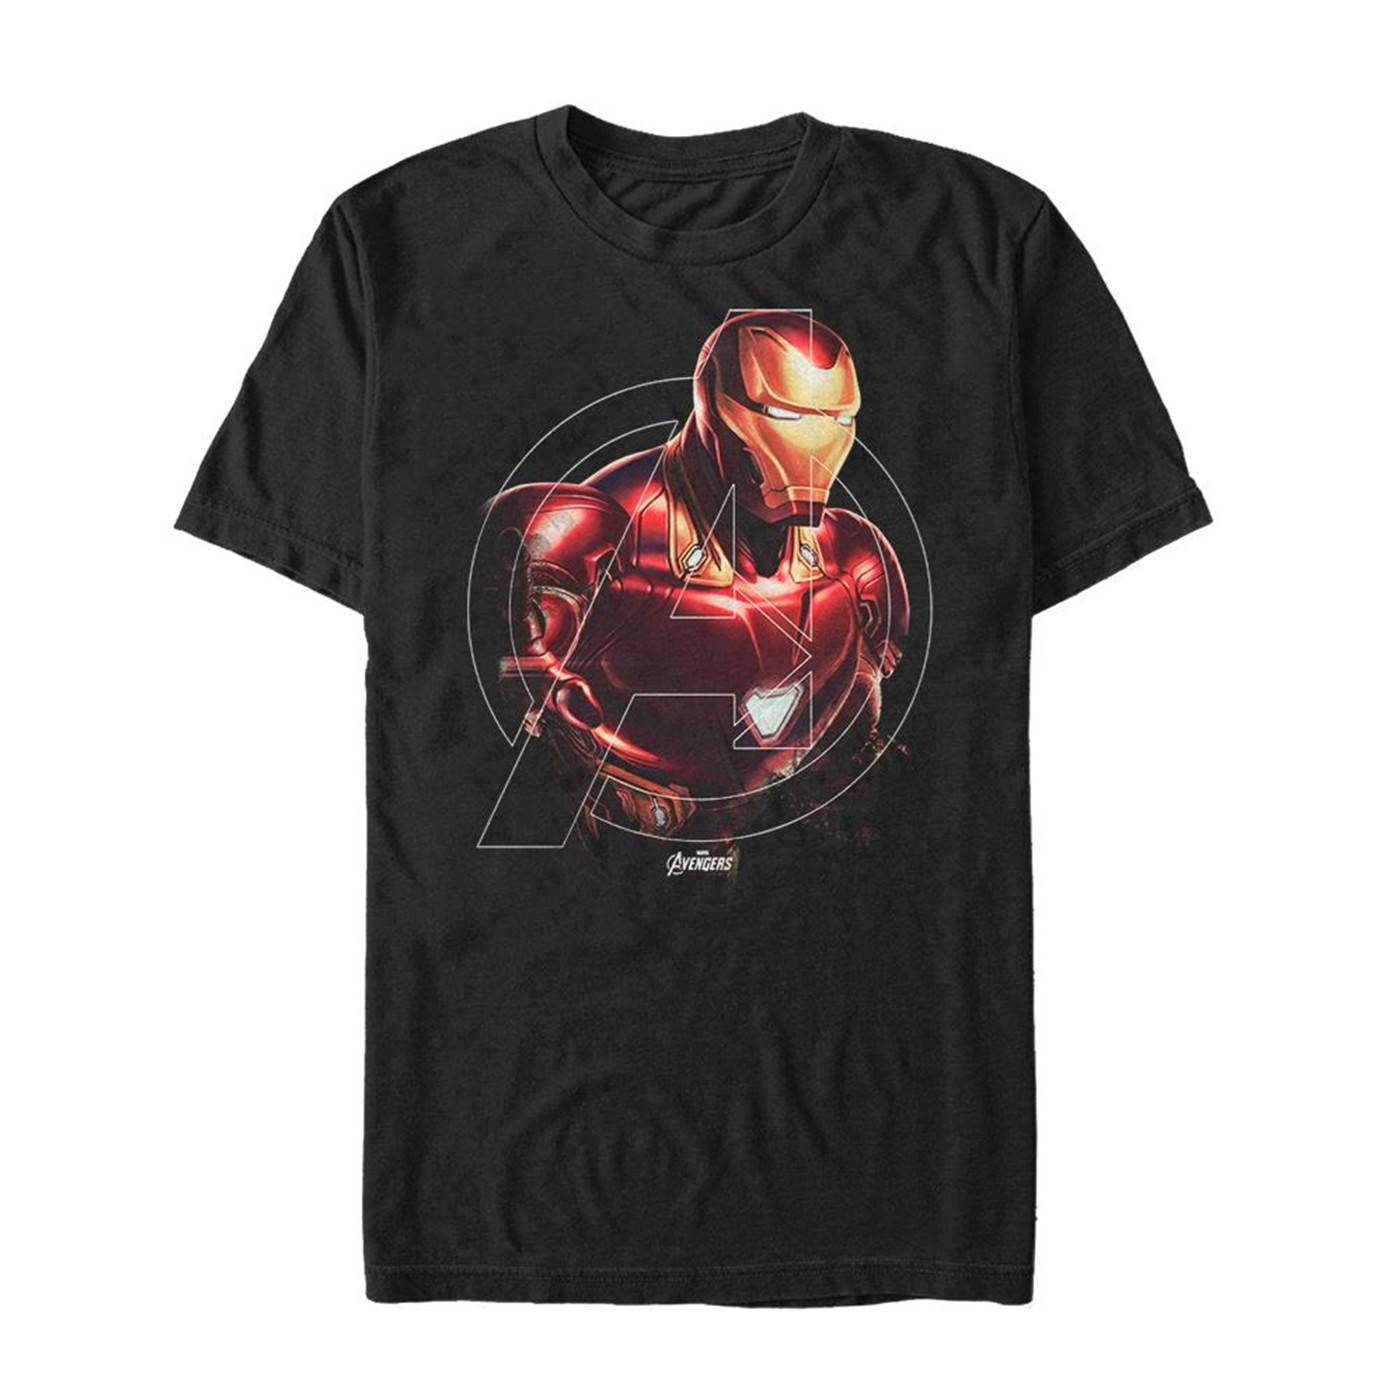 Avenger Endgame Iron Man Iron Hero Men's T-Shirt